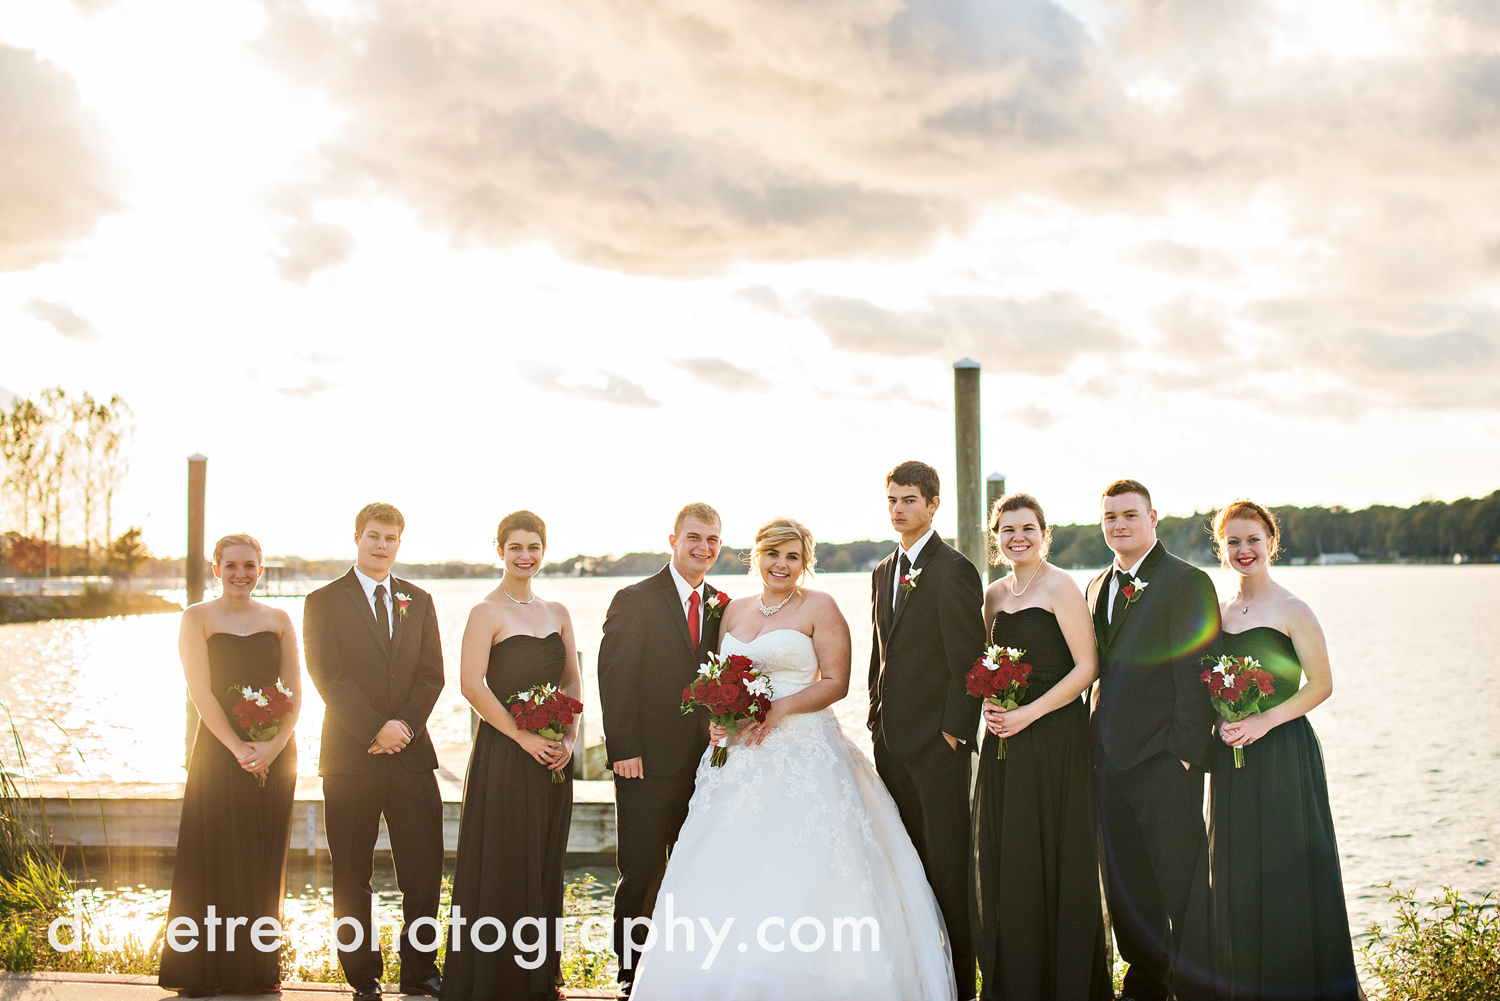 holland_wedding_photographer_59.jpg